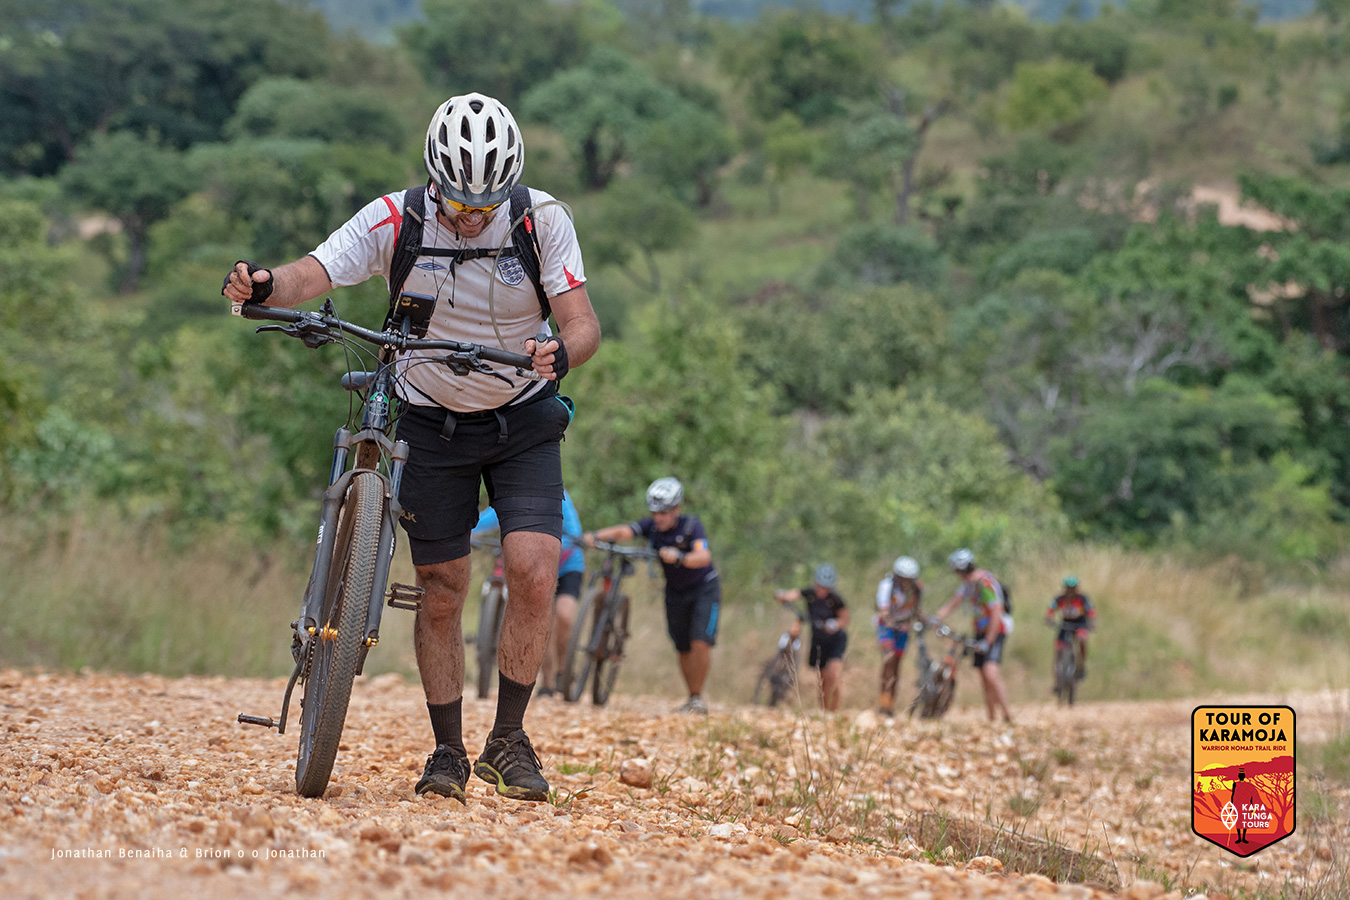 kara-tunga-tour-of-karamoja-uganda-africa-warrior-nomad-trail-bike-cycle-gravel-event-10